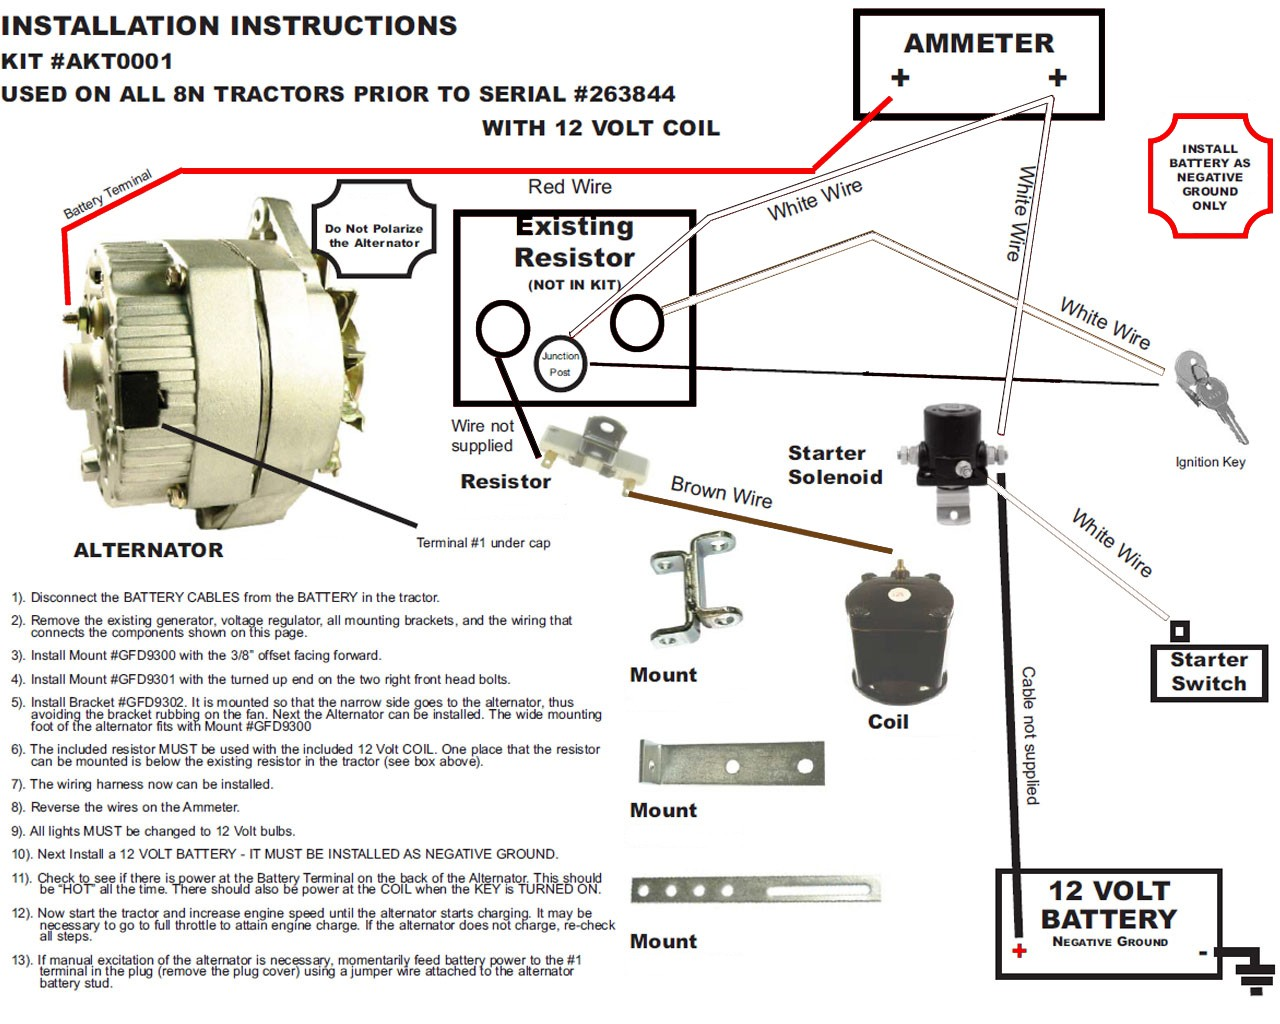 New Alternator Conversion Kit Fits Early Ford 2n Tractors